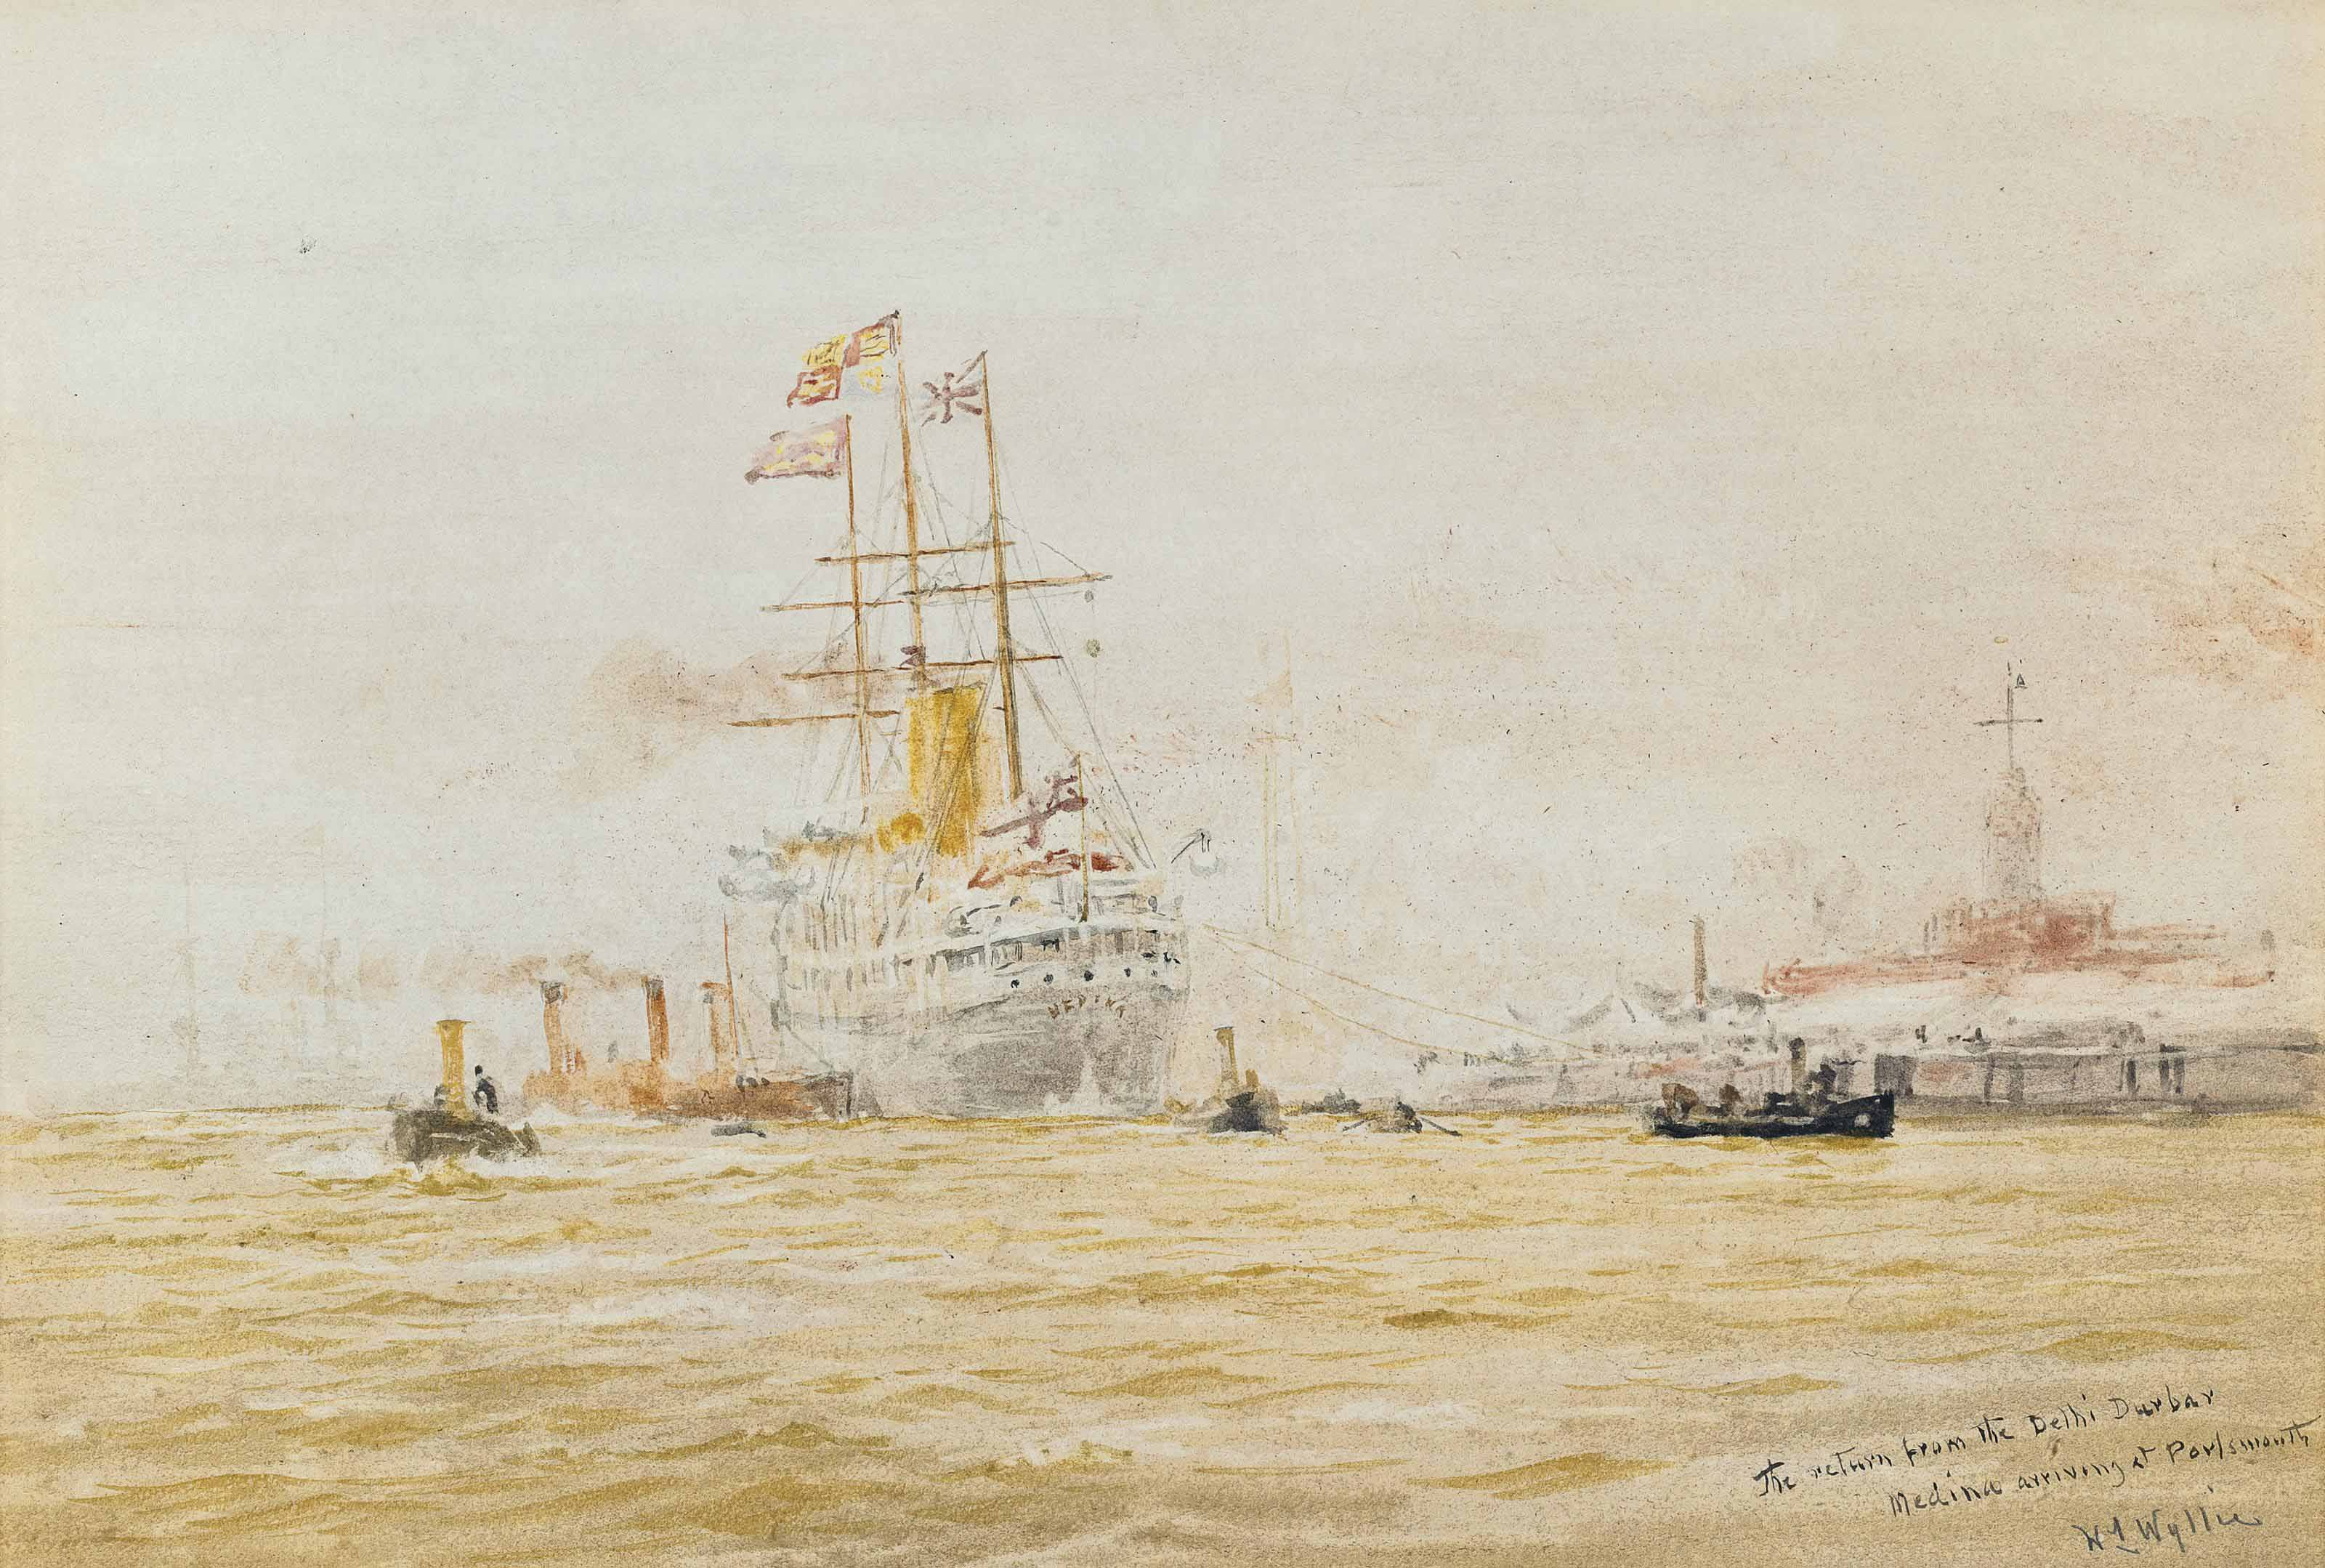 The return from the Delhi Durbar, H.M.S. Medina arriving at Portsmouth